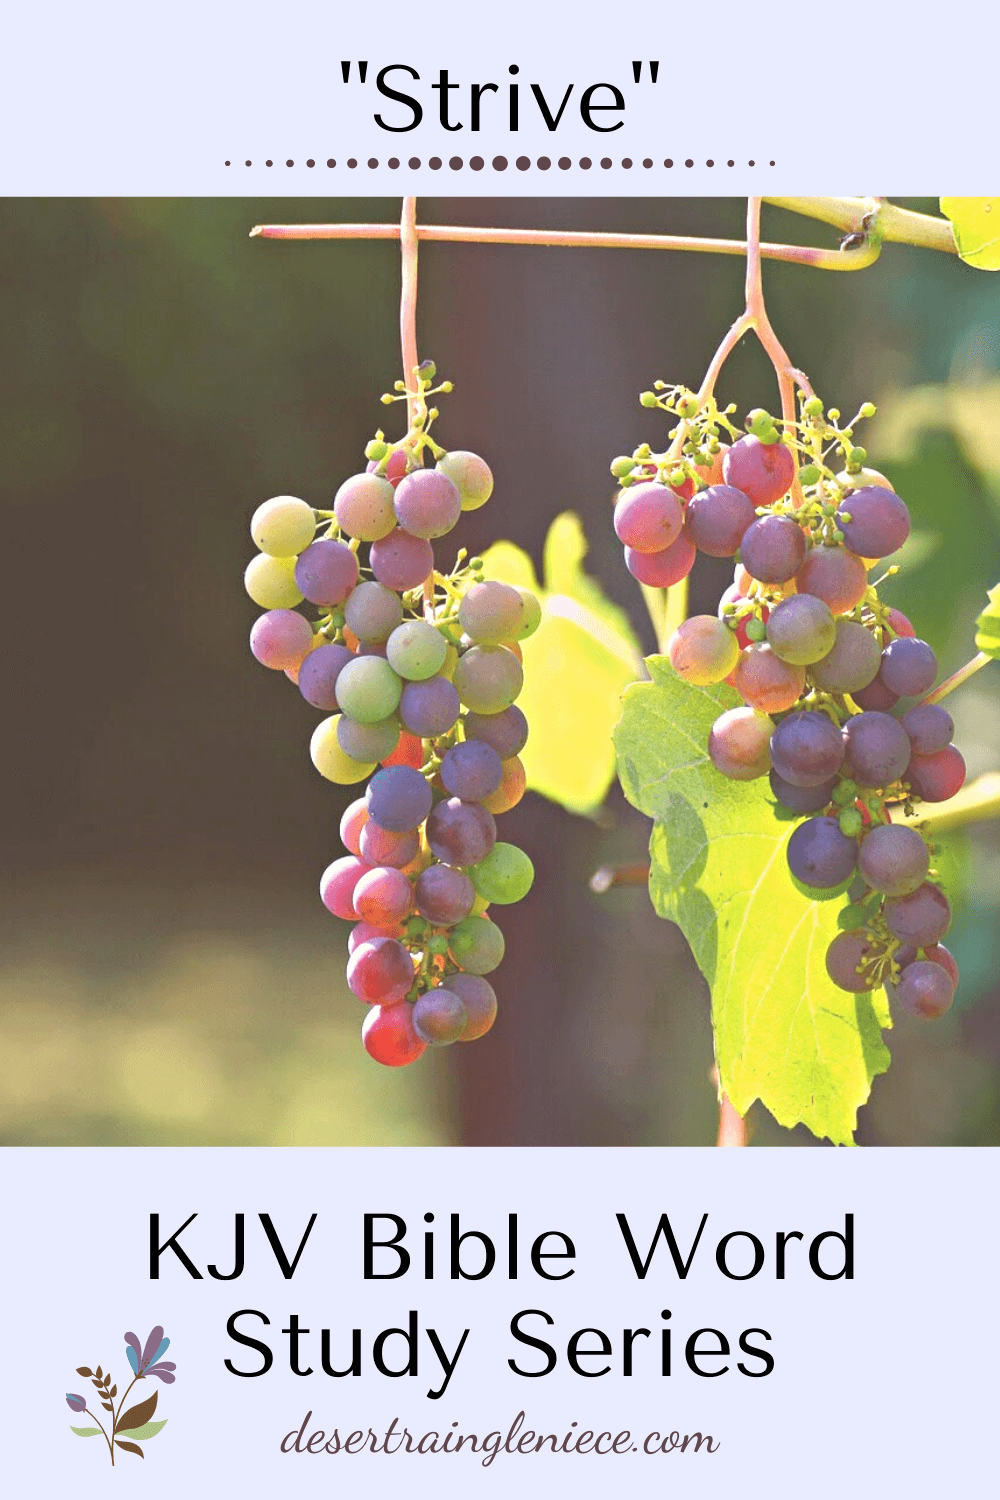 To strive or not to strive? As Christians, we are called to do both! Learn where to put your effort and where to let it go in this KJV study. #strive, #kjvbible, #wordstudy, #biblestudyforwomen